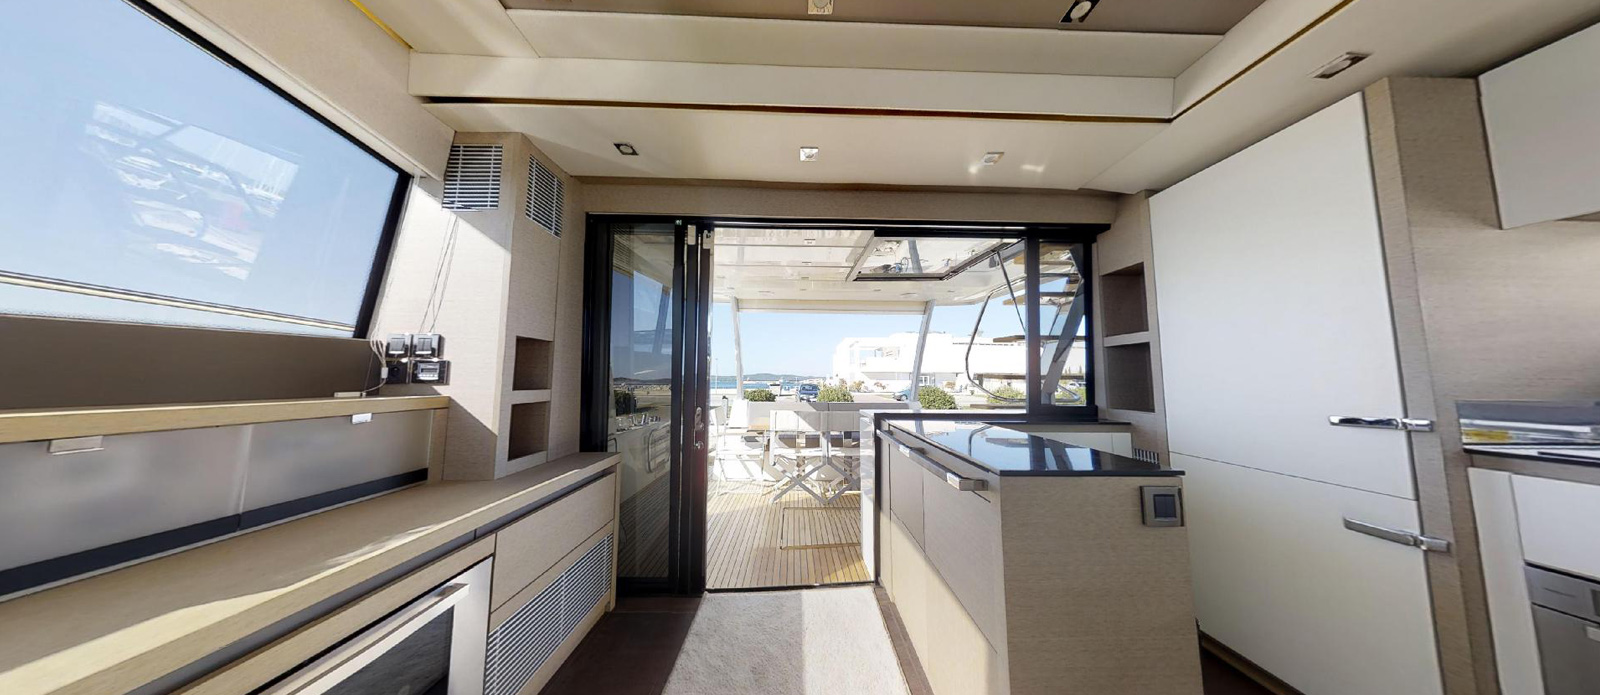 Prestige-630---Boss----Aft-Deck-and-Galley-View